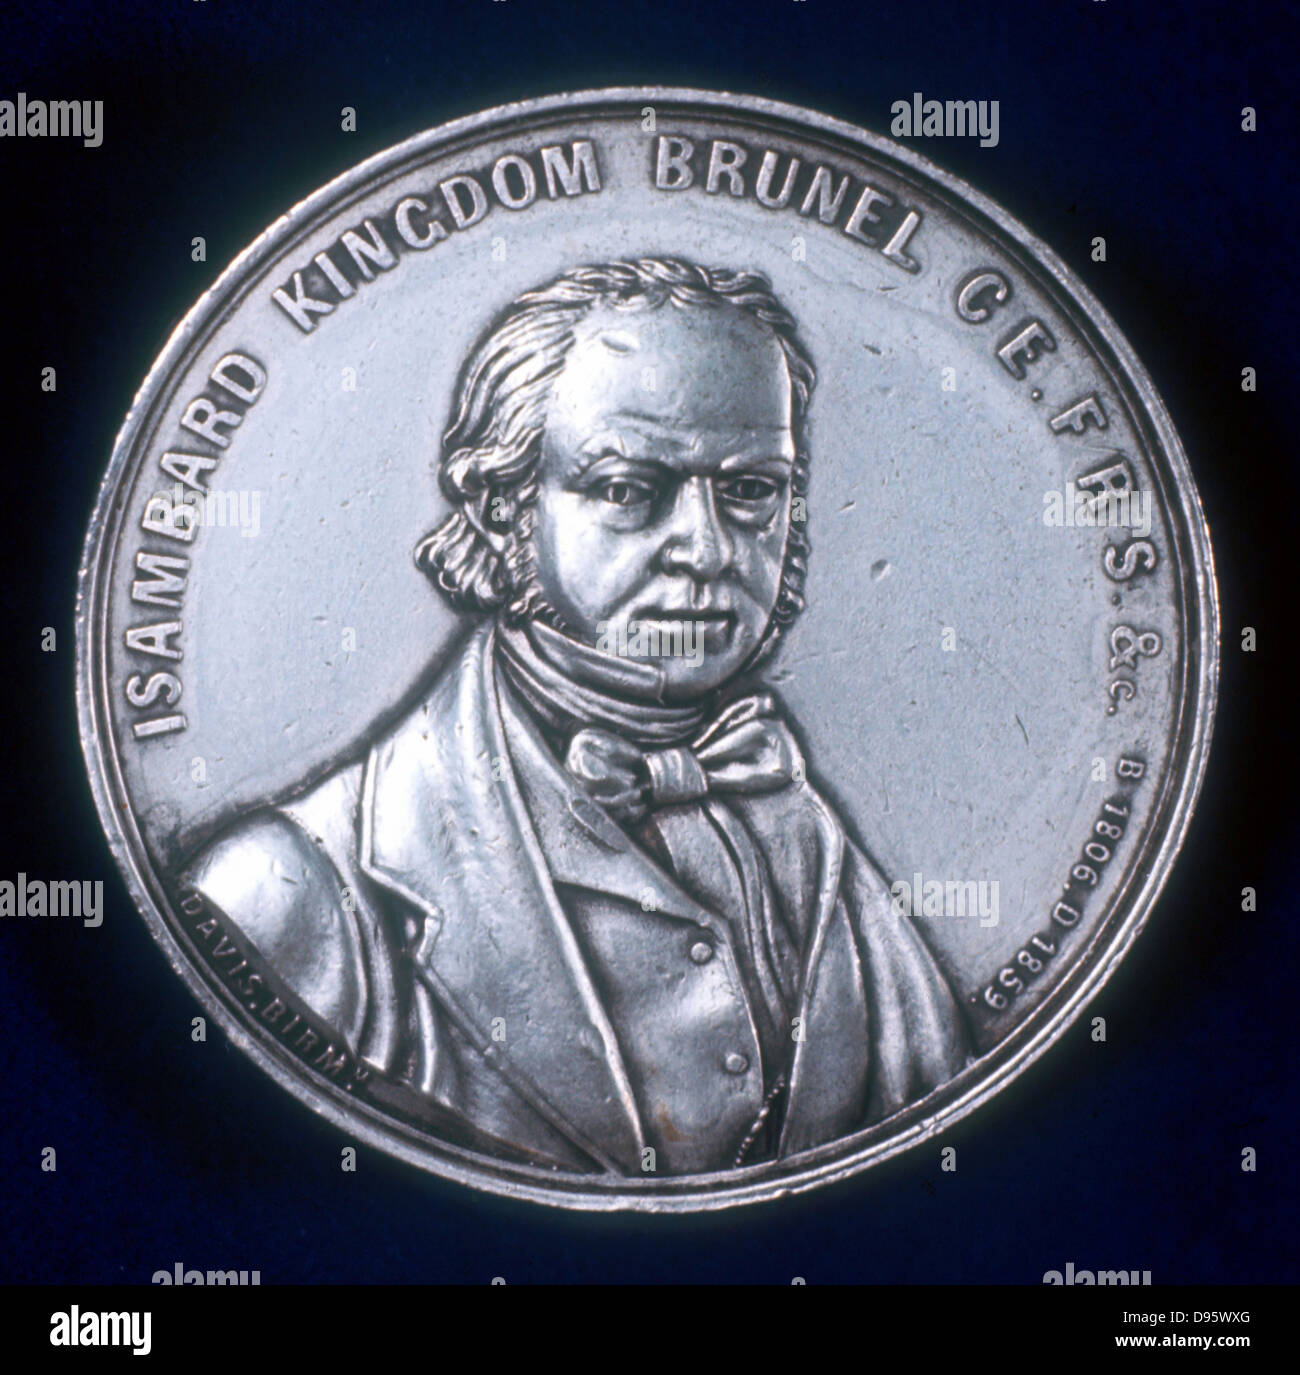 Isambard Kingdom Brunel (1806-1859) English civil and mechanical engineer. From obverse of medal commemorating his - Stock Image